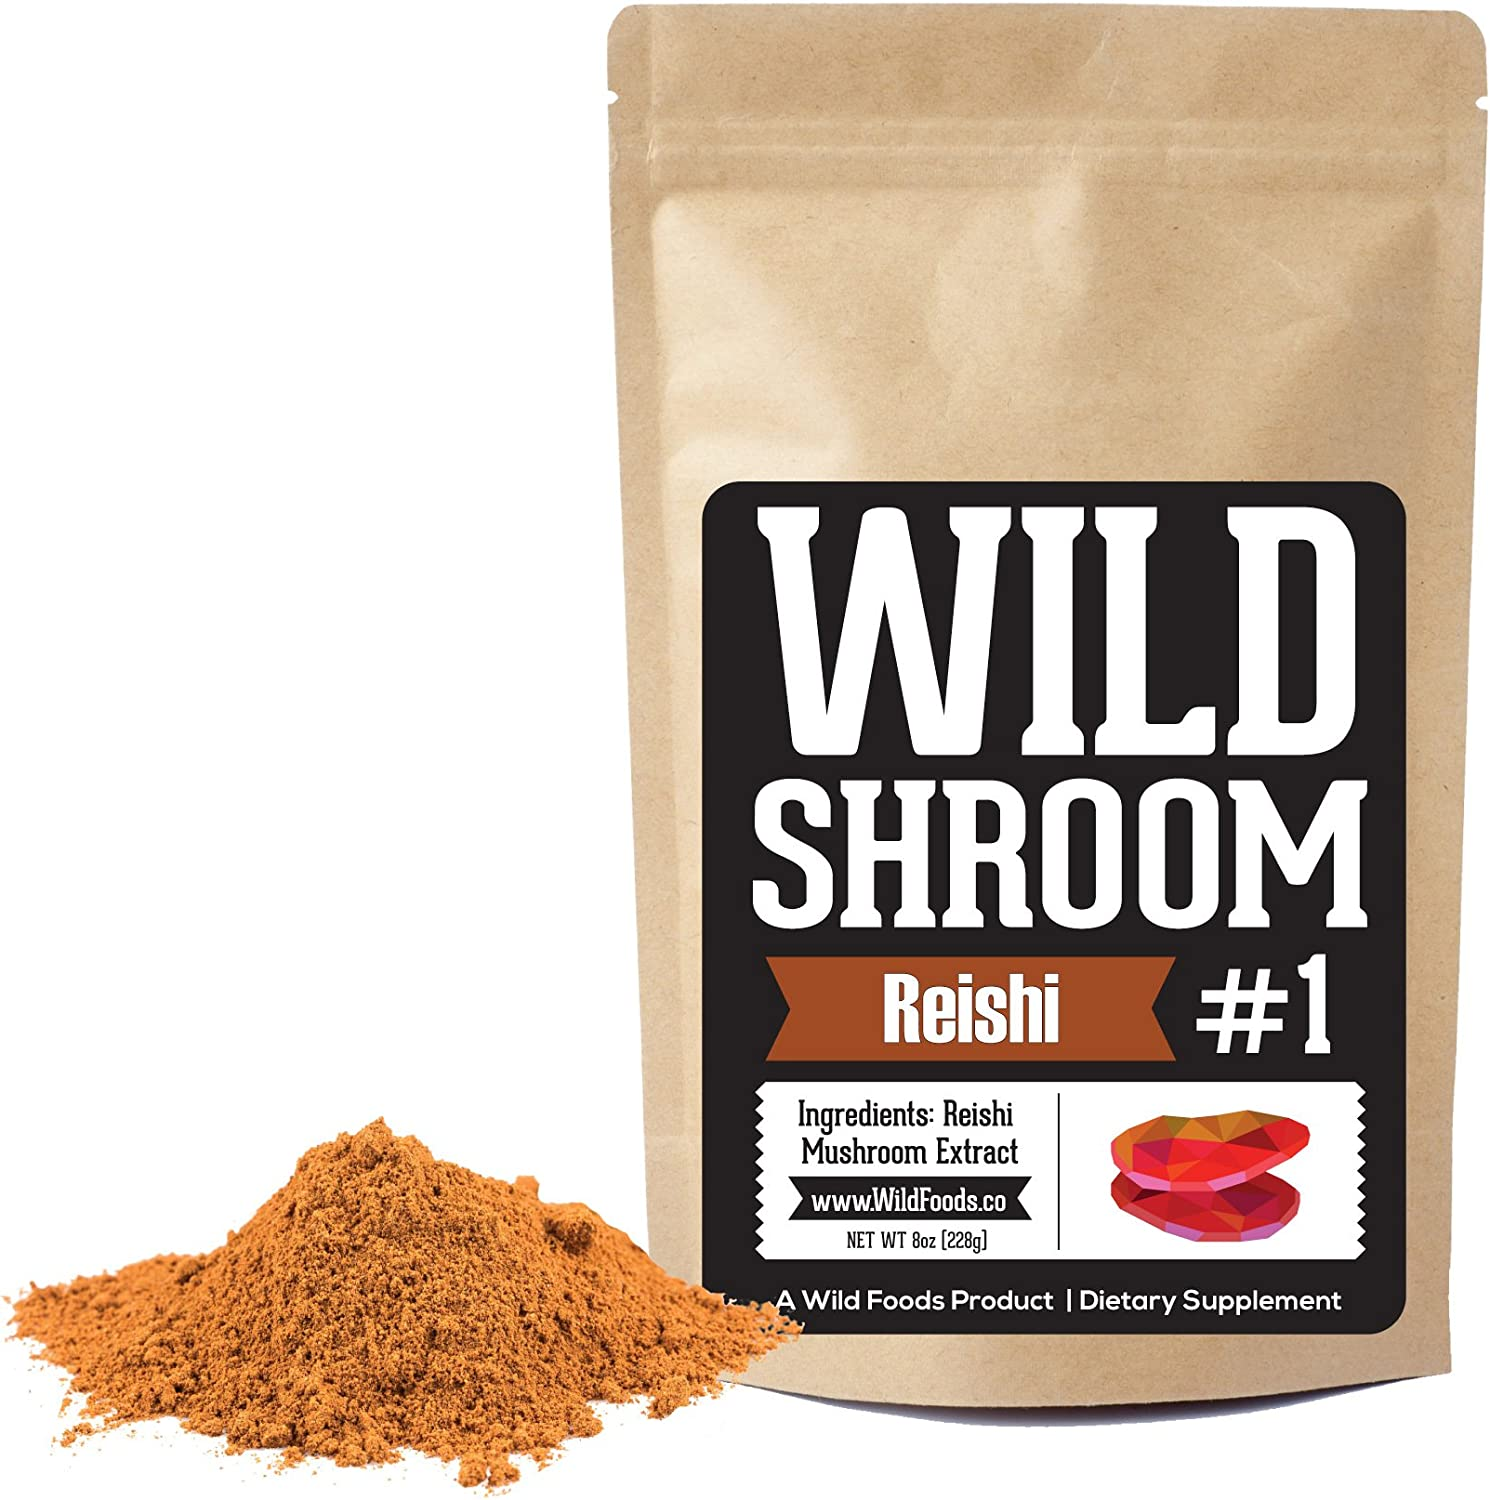 Reishi Mushroom Extract 10 1 Superfood Powder by Wild Foods Fruiting Bodies Only Adaptogenic Herb for Immune System, Sleep Aid, and Nootropic Mental Performance Two 8 Ounce